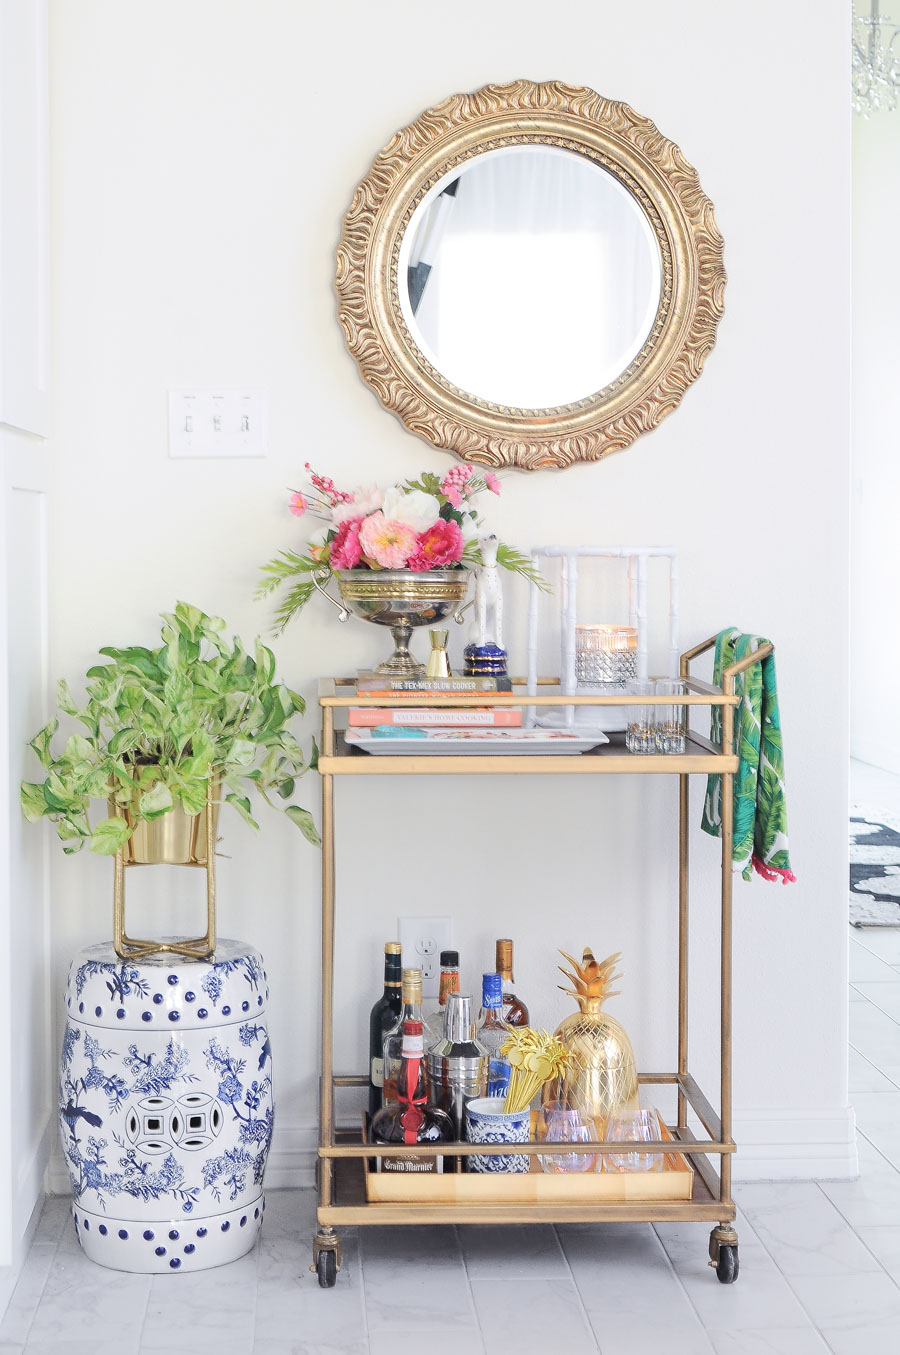 Love this gold bar cart styled with spring decor- so many great decor tips and ideas for styling a bar cart in your home.